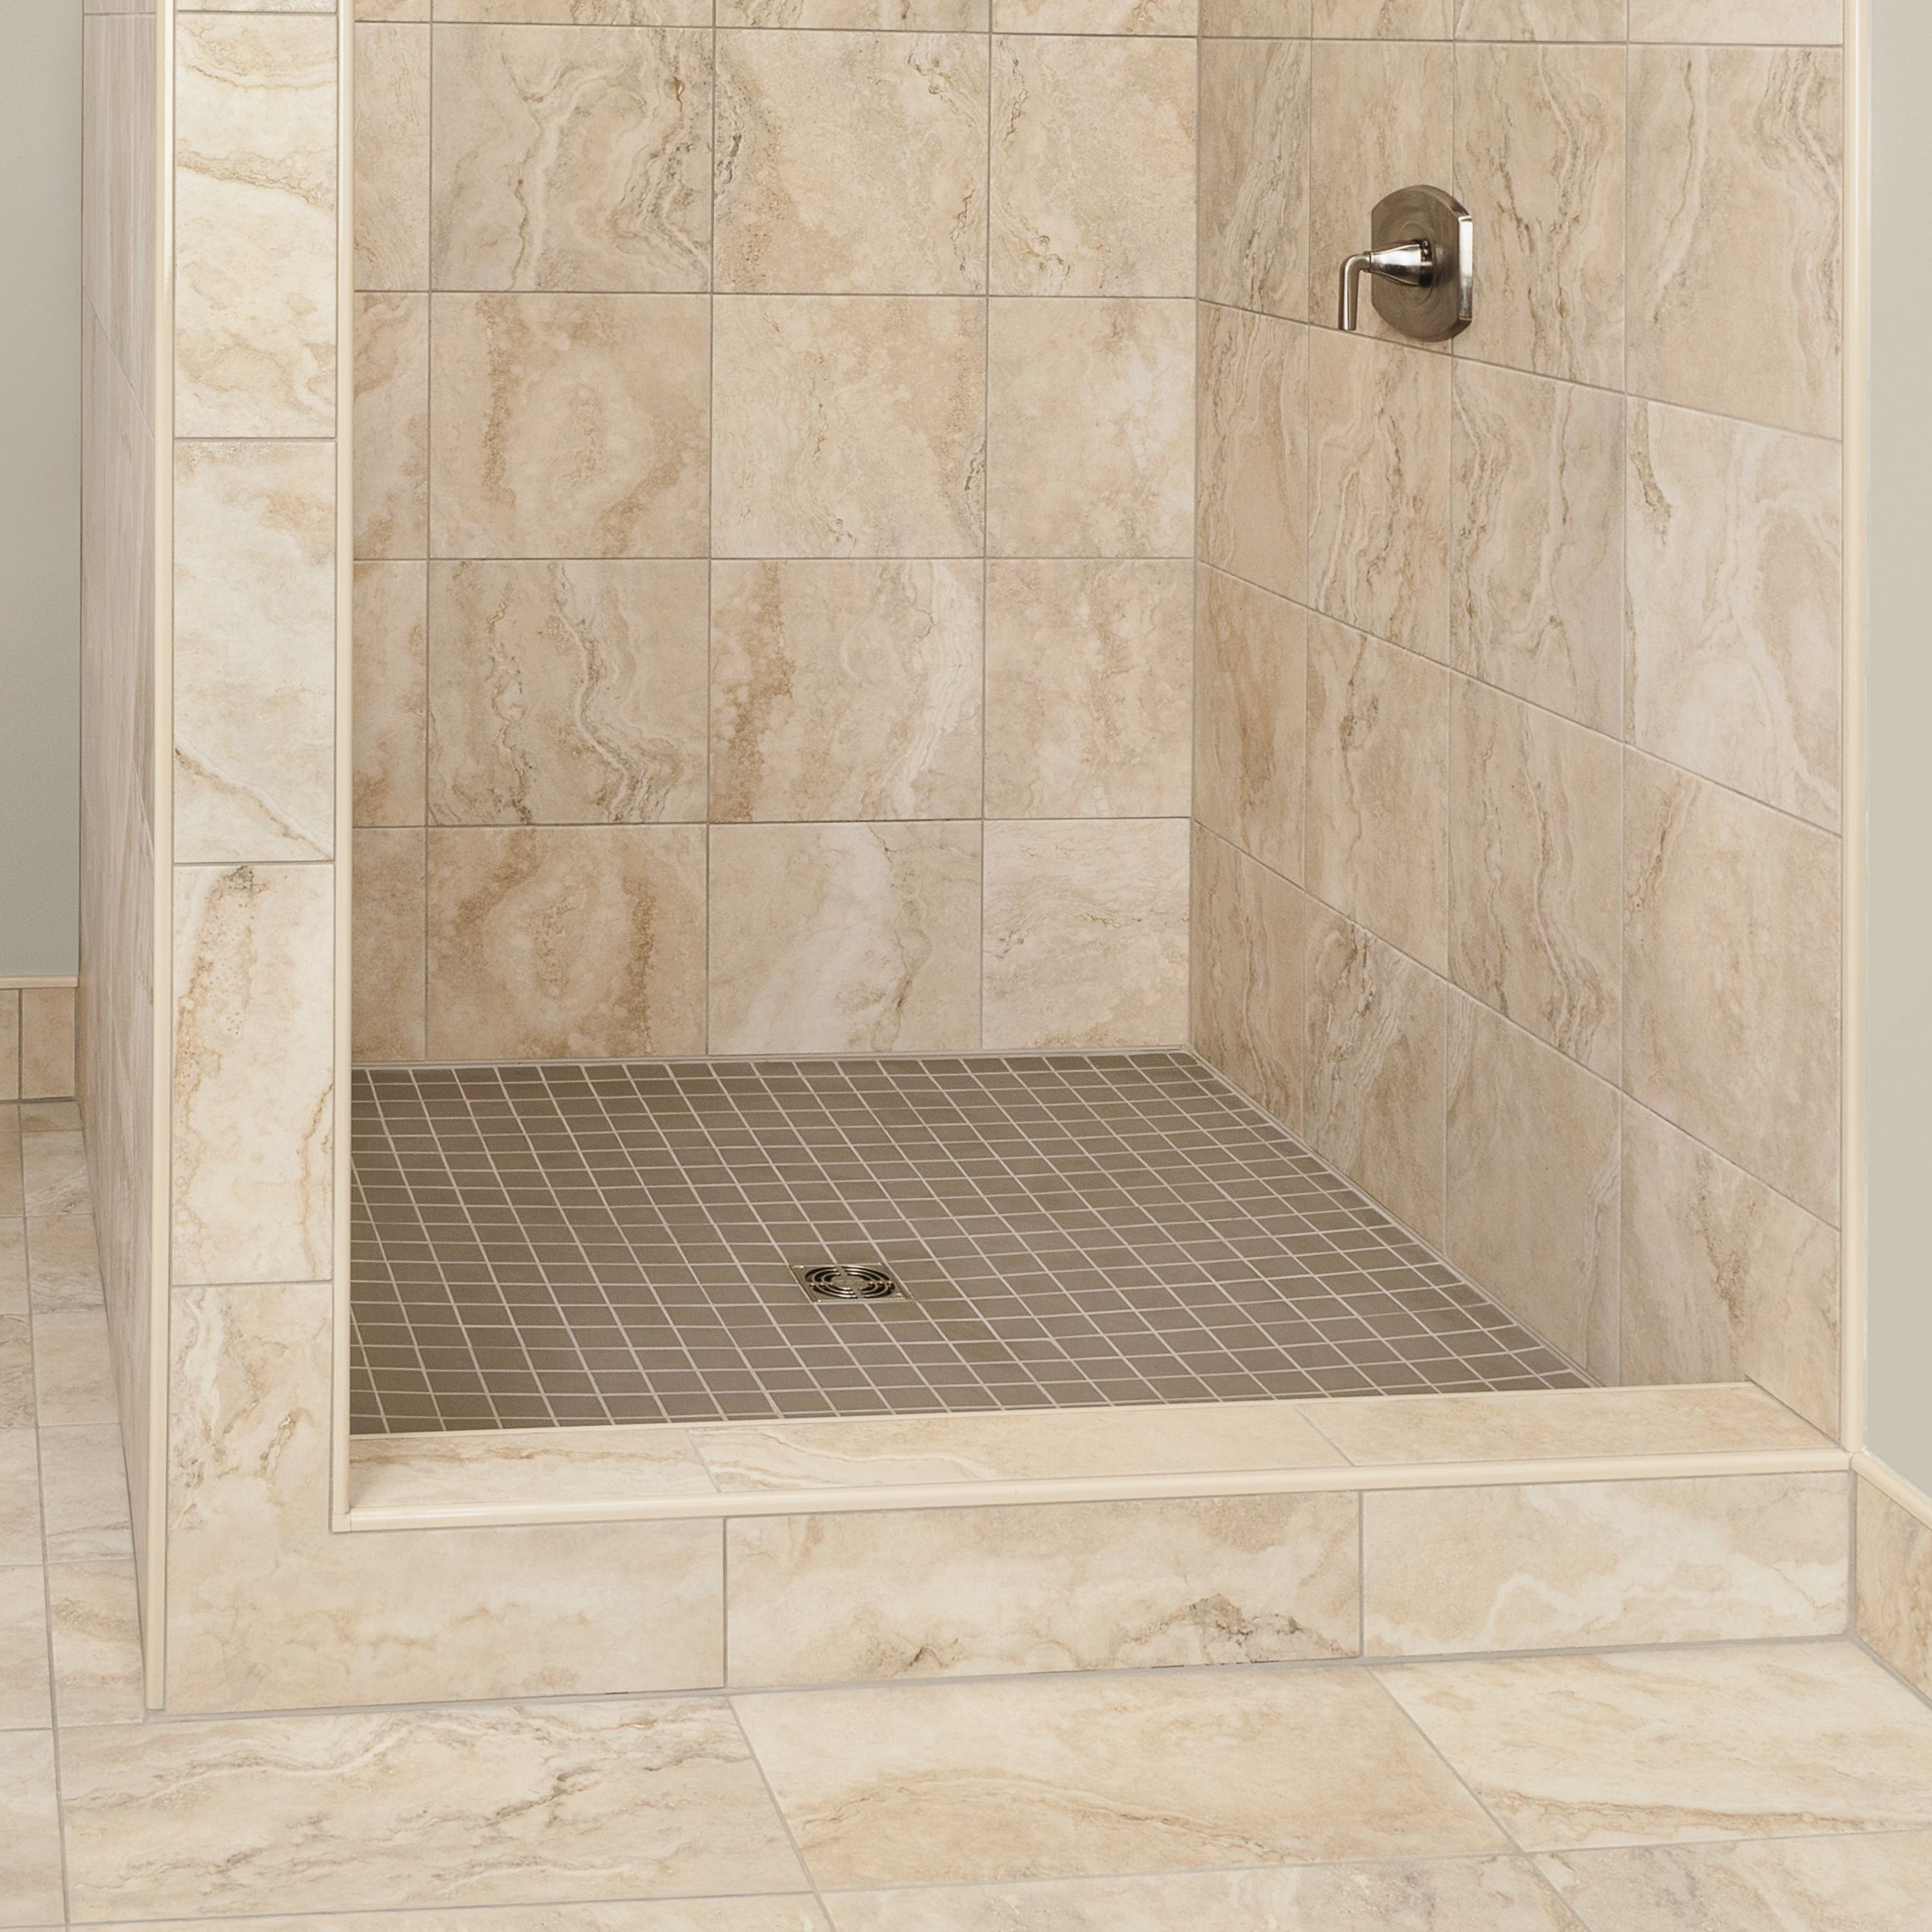 Point Drain Shower With Curb With Kerdi Waterproofing Membrane Schluter Com Bathrooms Remodel Shower Bathtub